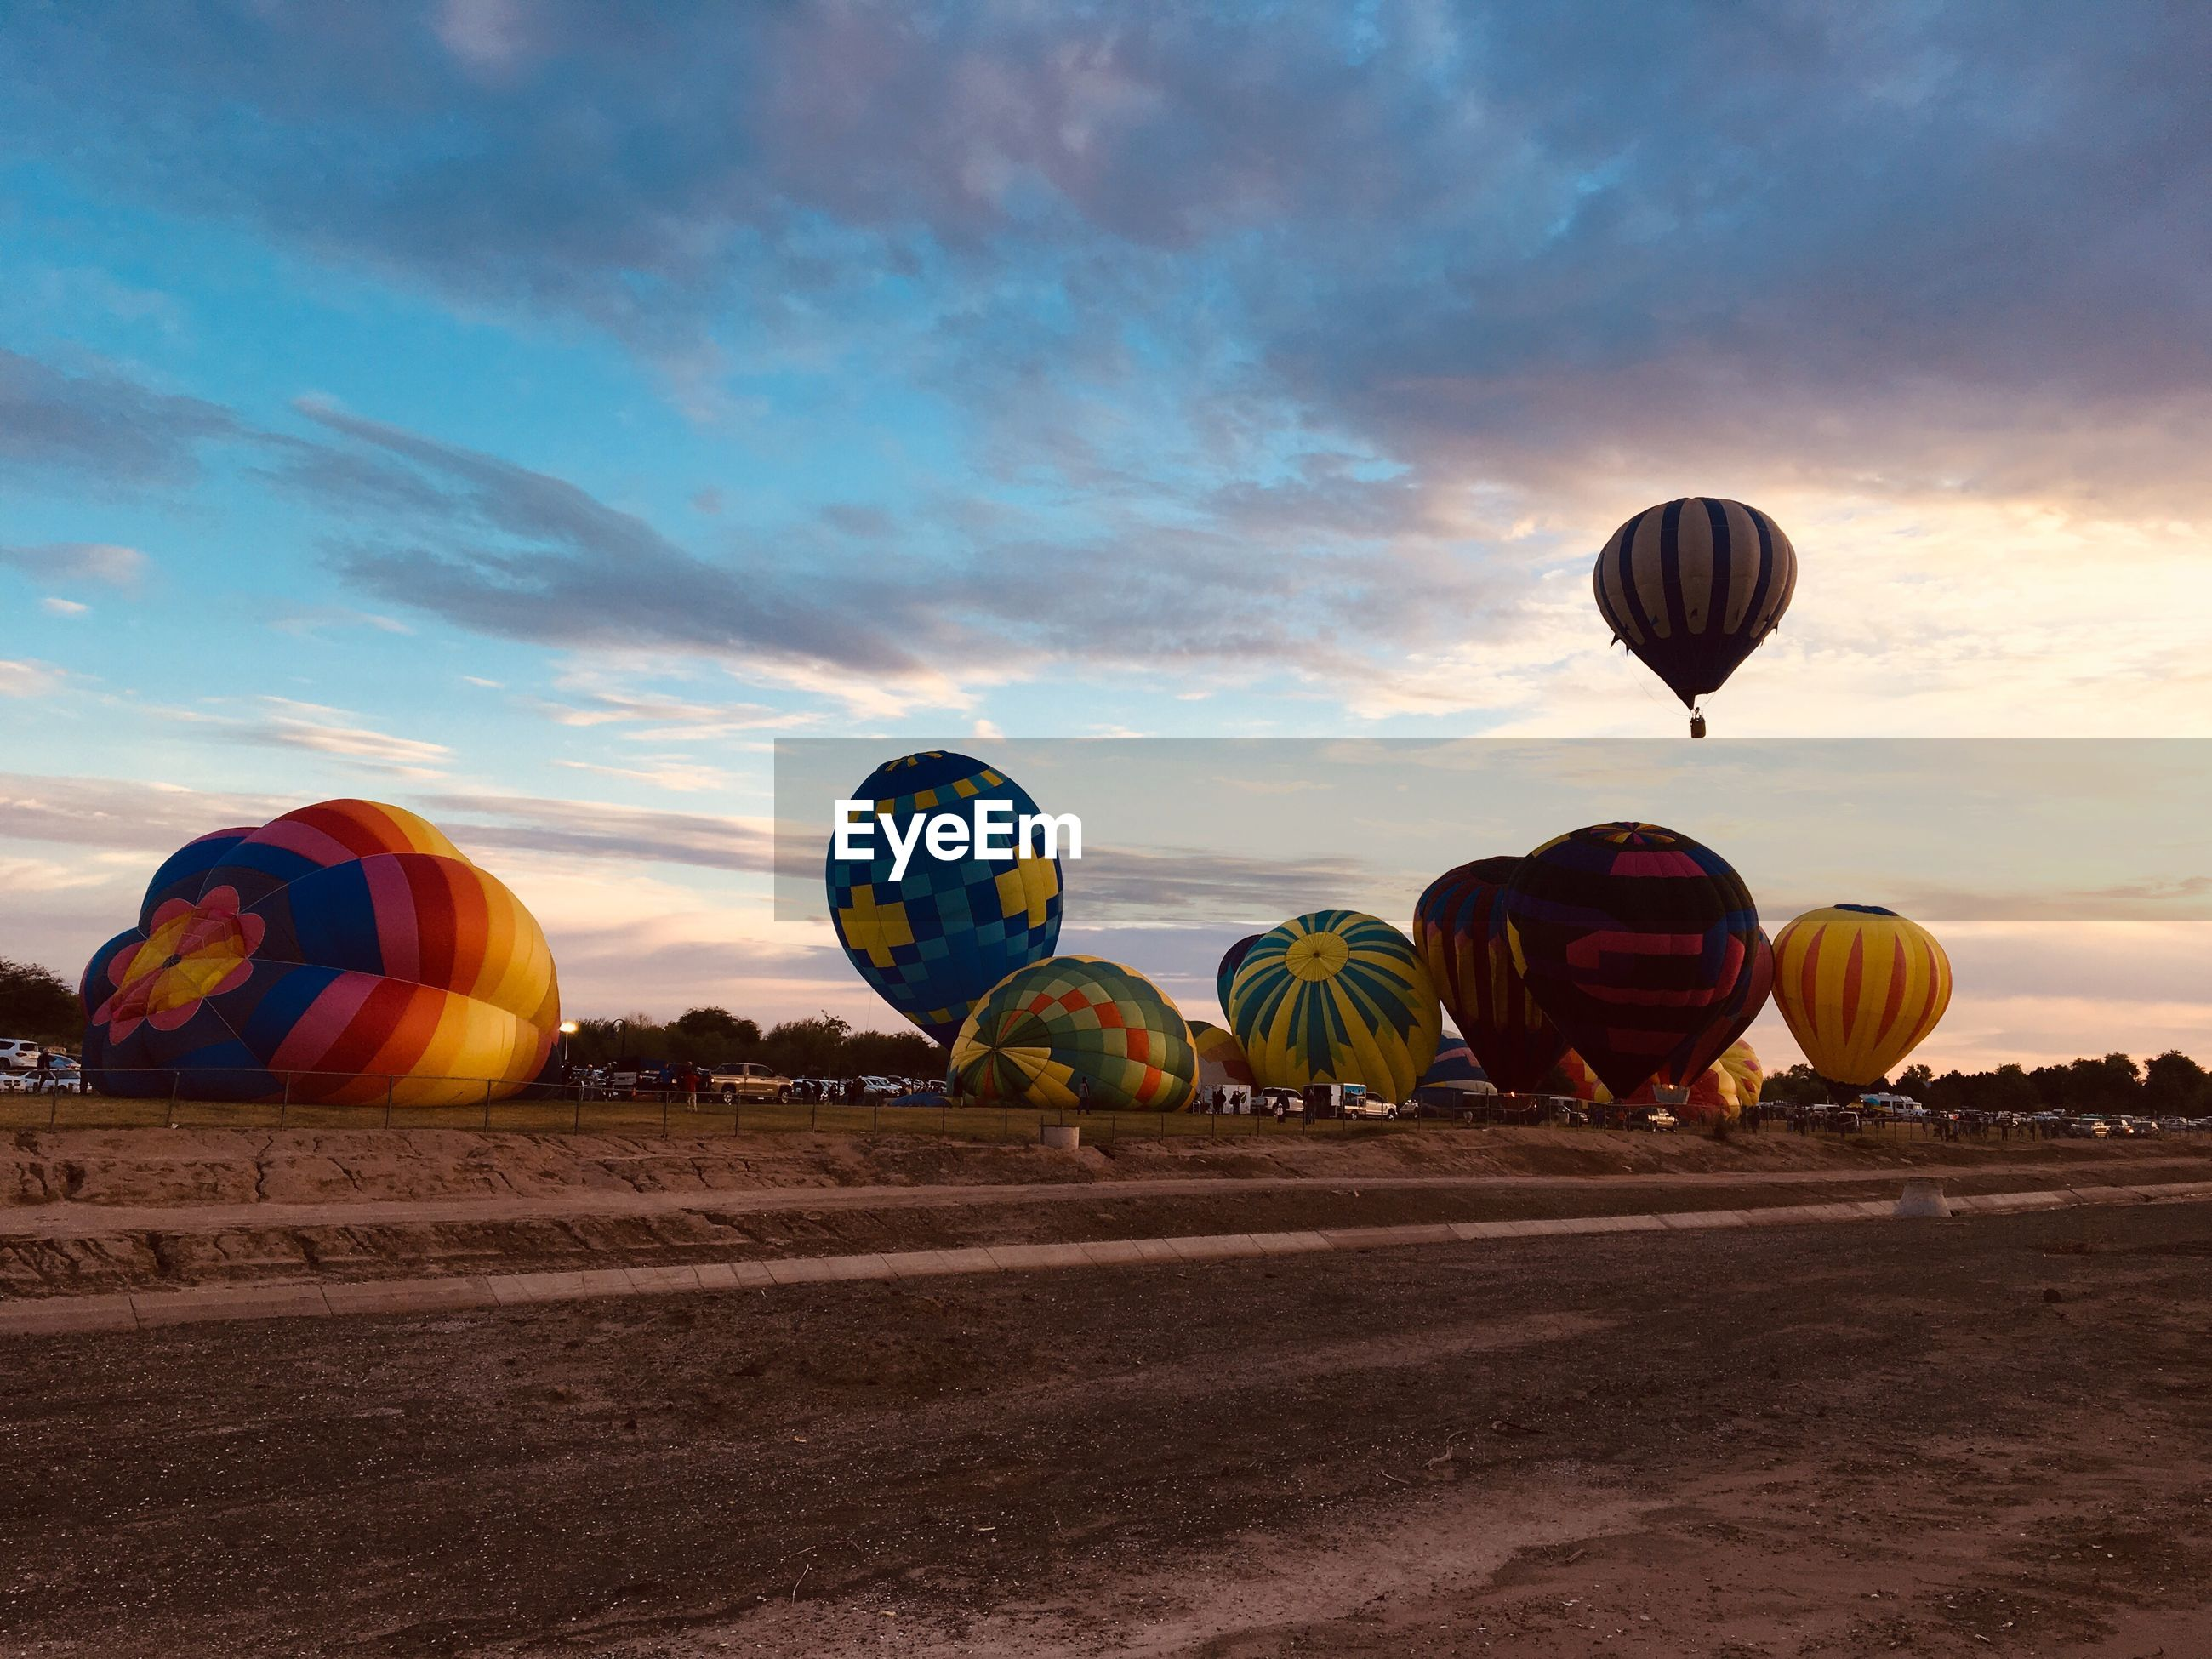 sky, balloon, transportation, hot air balloon, cloud - sky, air vehicle, nature, multi colored, land, mode of transportation, adventure, outdoors, field, celebration, beauty in nature, no people, ballooning festival, day, scenics - nature, orange color